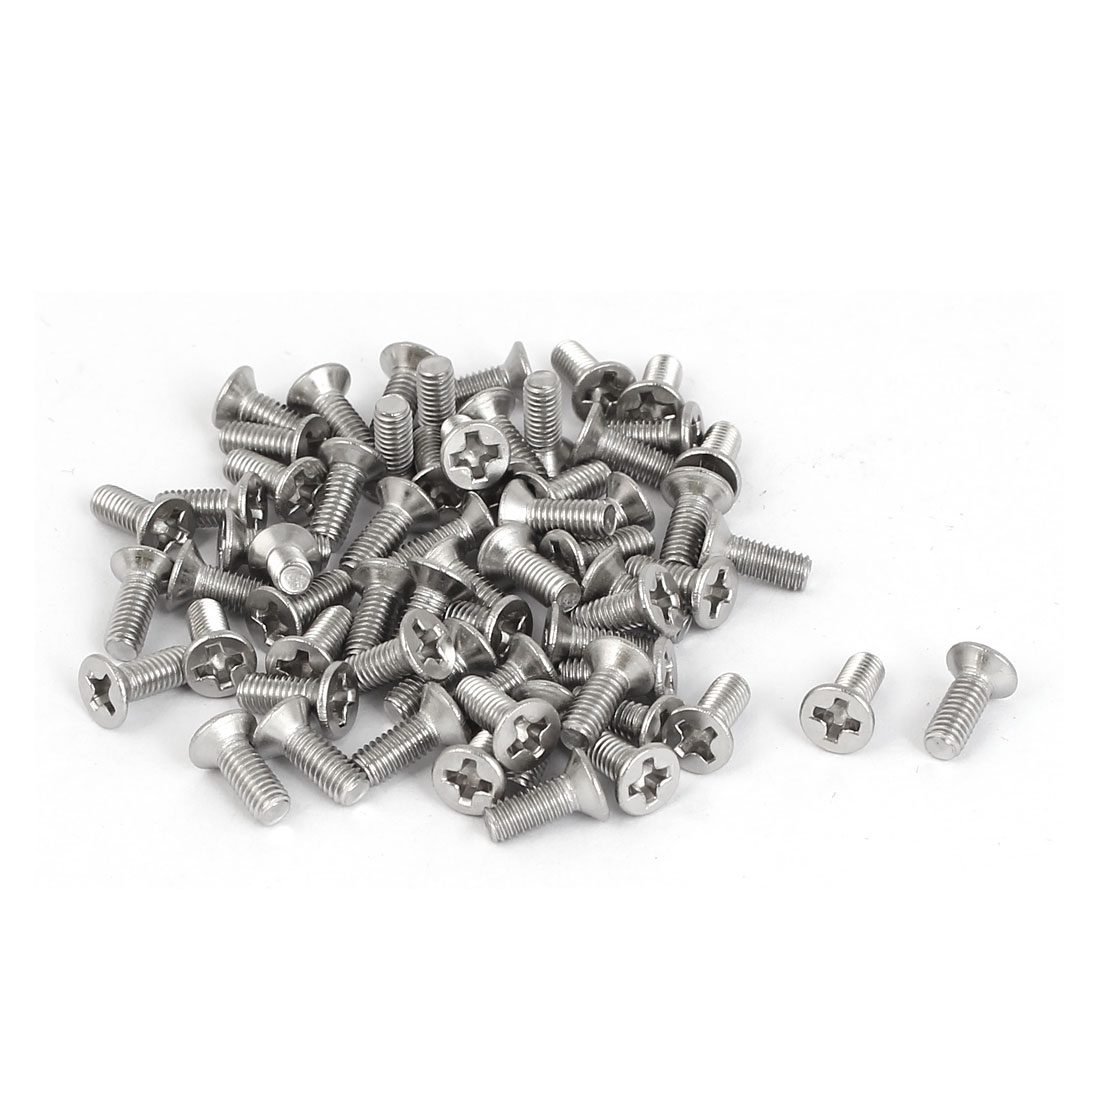 M3 x 8mm 316 Stainless Steel Phillips Flat Head Fully Thread Screws Bolts 60 Pcs